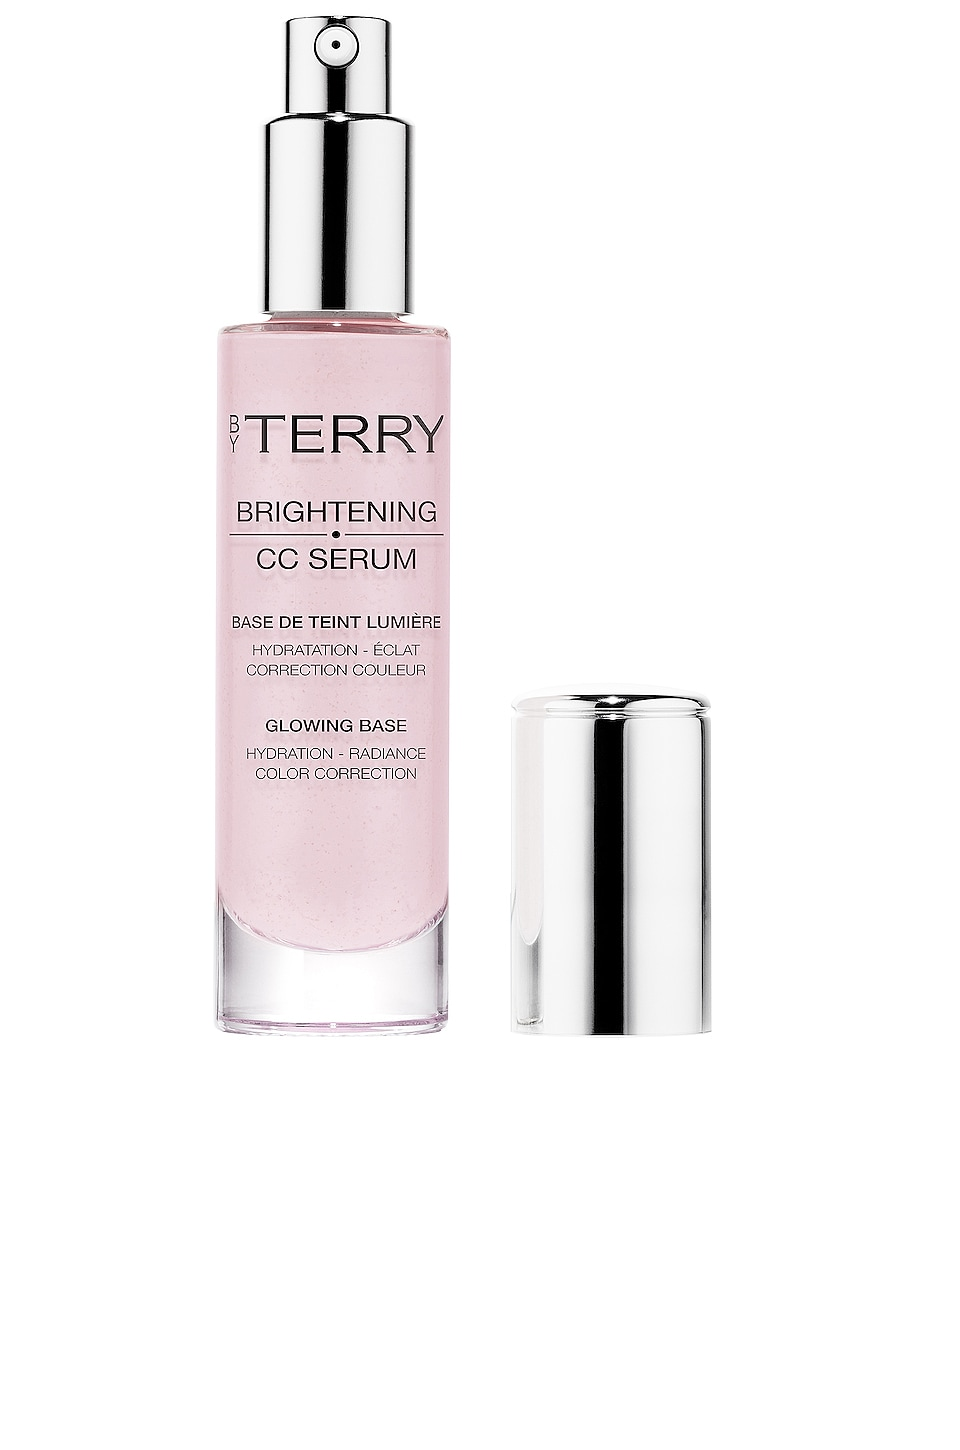 By Terry Brightening CC Serum in Rose Elixir